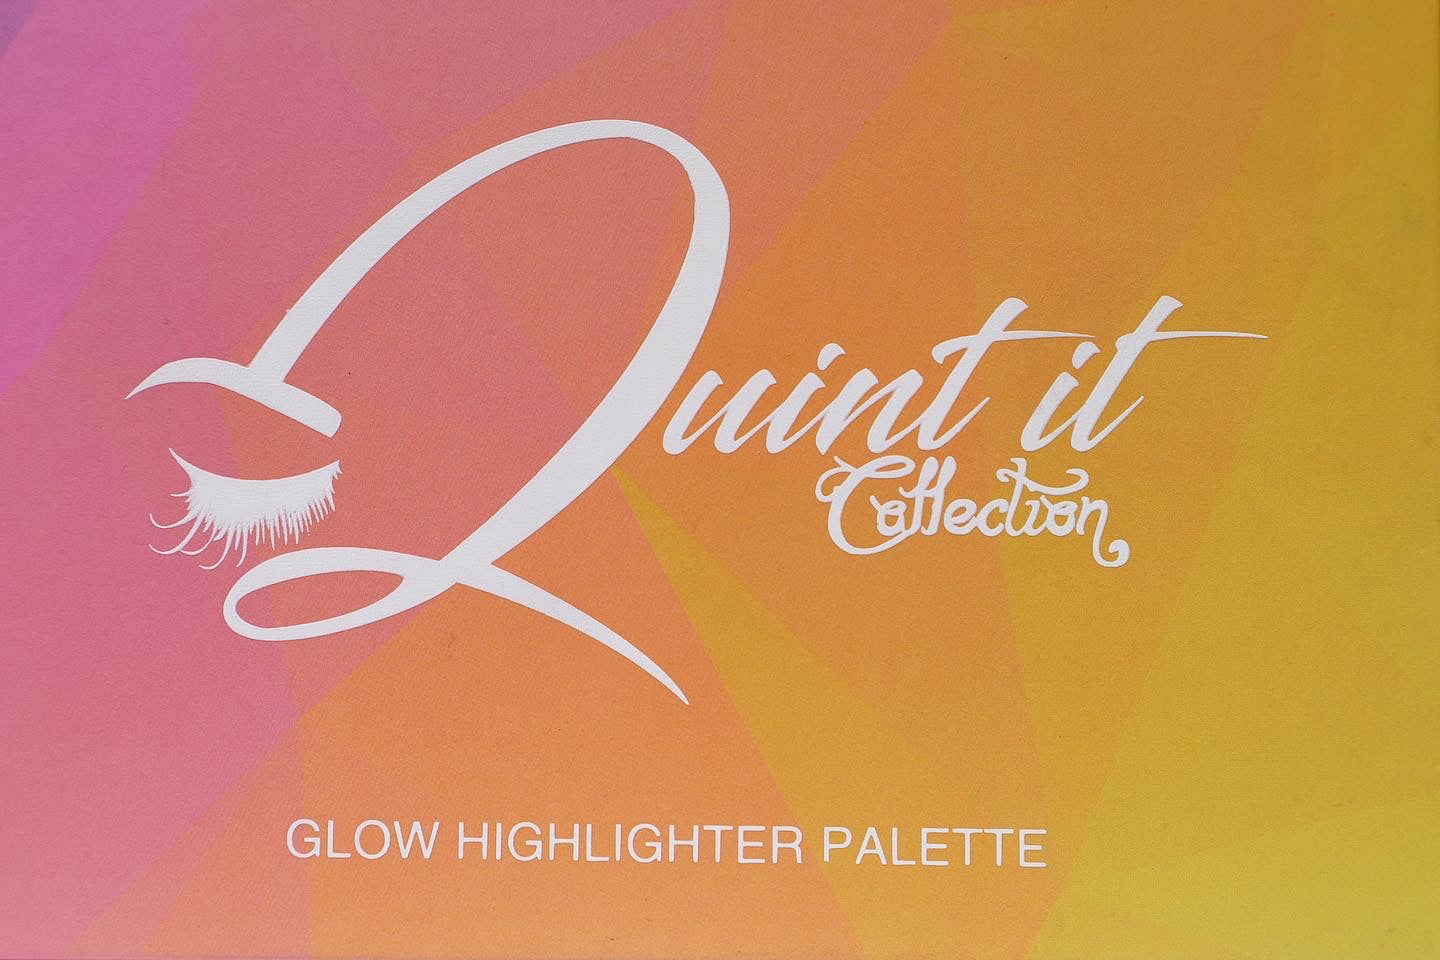 GLOW HIGHLIGHTER PALETTE